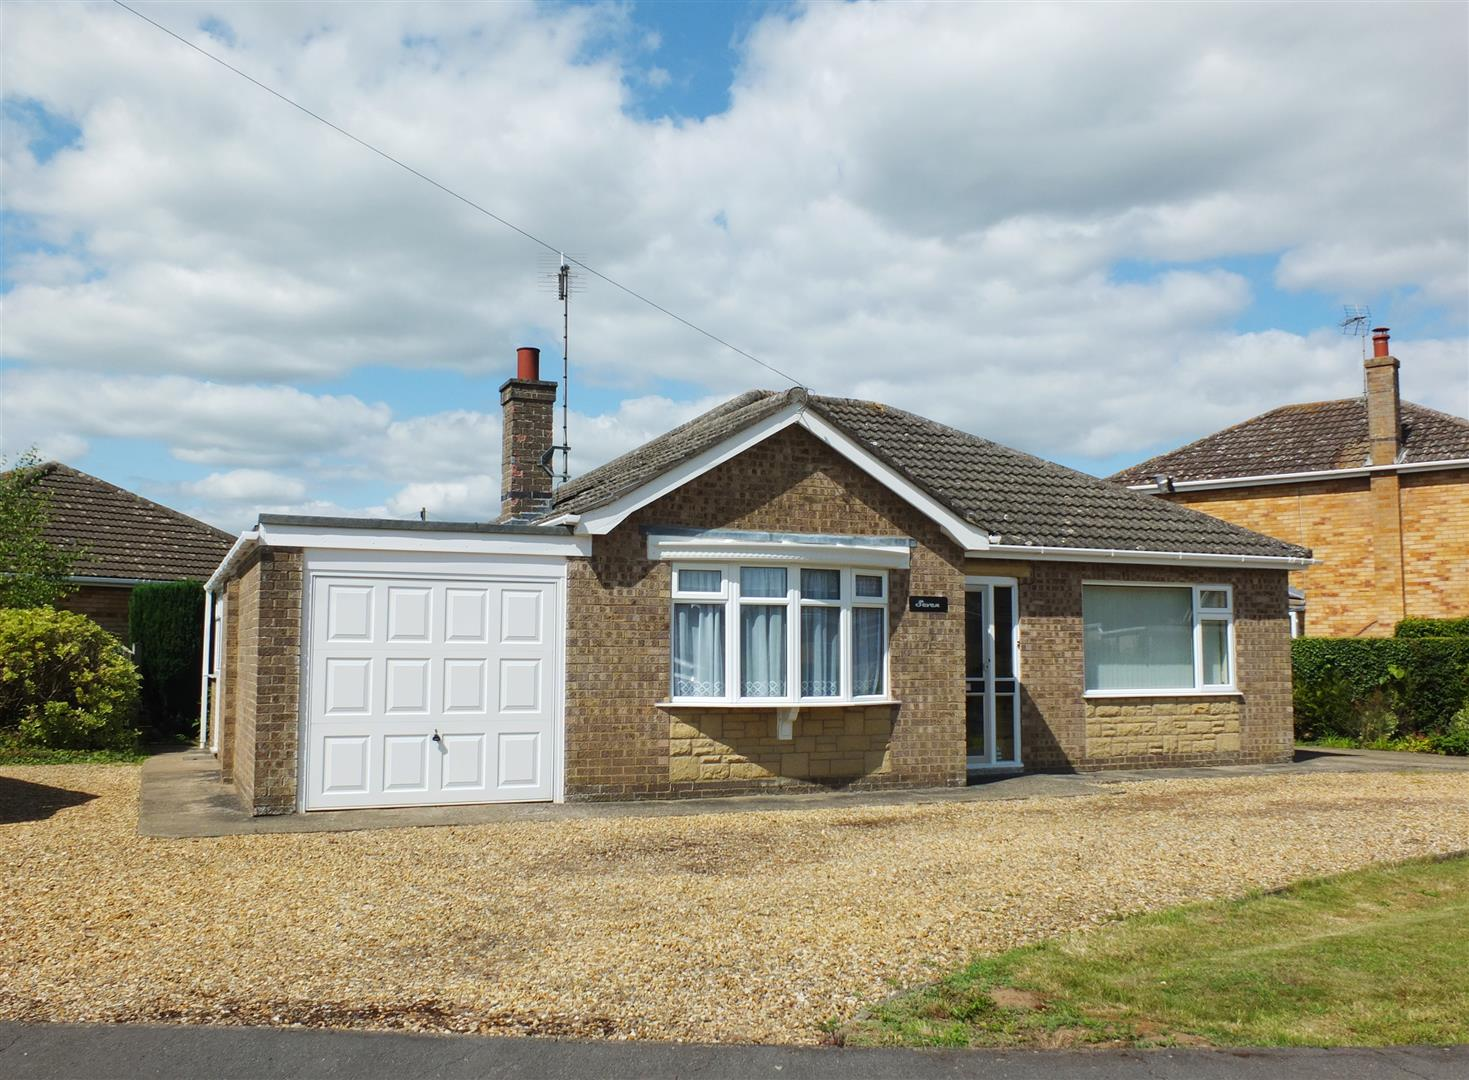 2 bed detached bungalow for sale in Long Sutton Spalding, PE12 9BZ  - Property Image 1